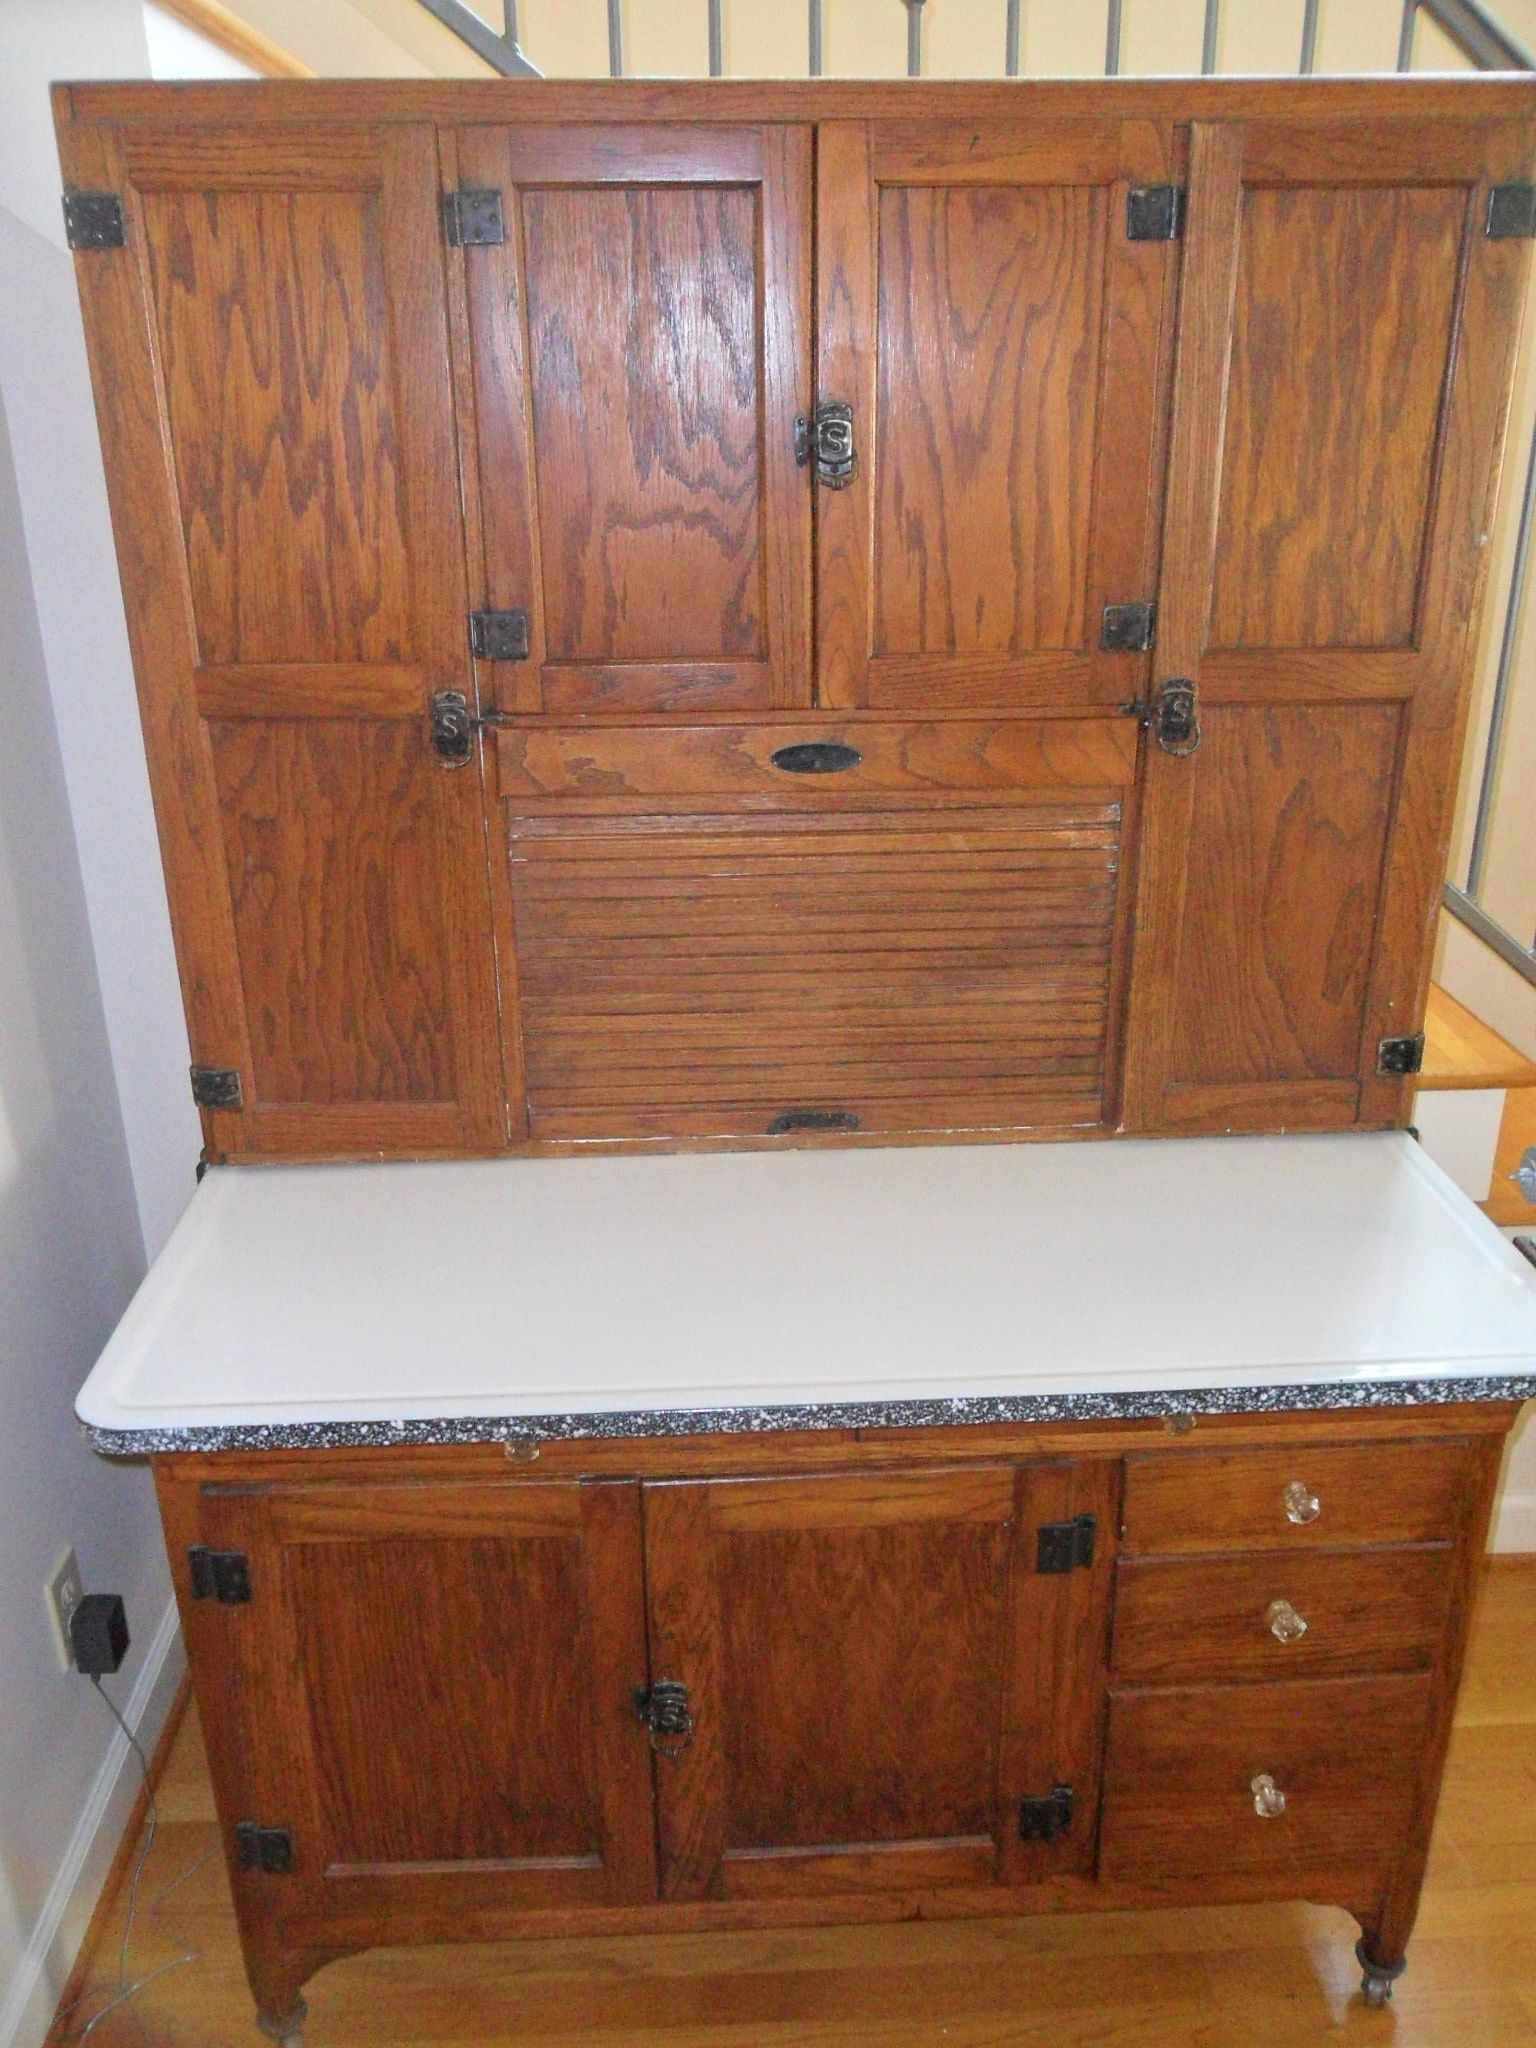 Antique European Kitchen Cabinets Antique Bakers Cabinet Sellers Bakers Cabinet